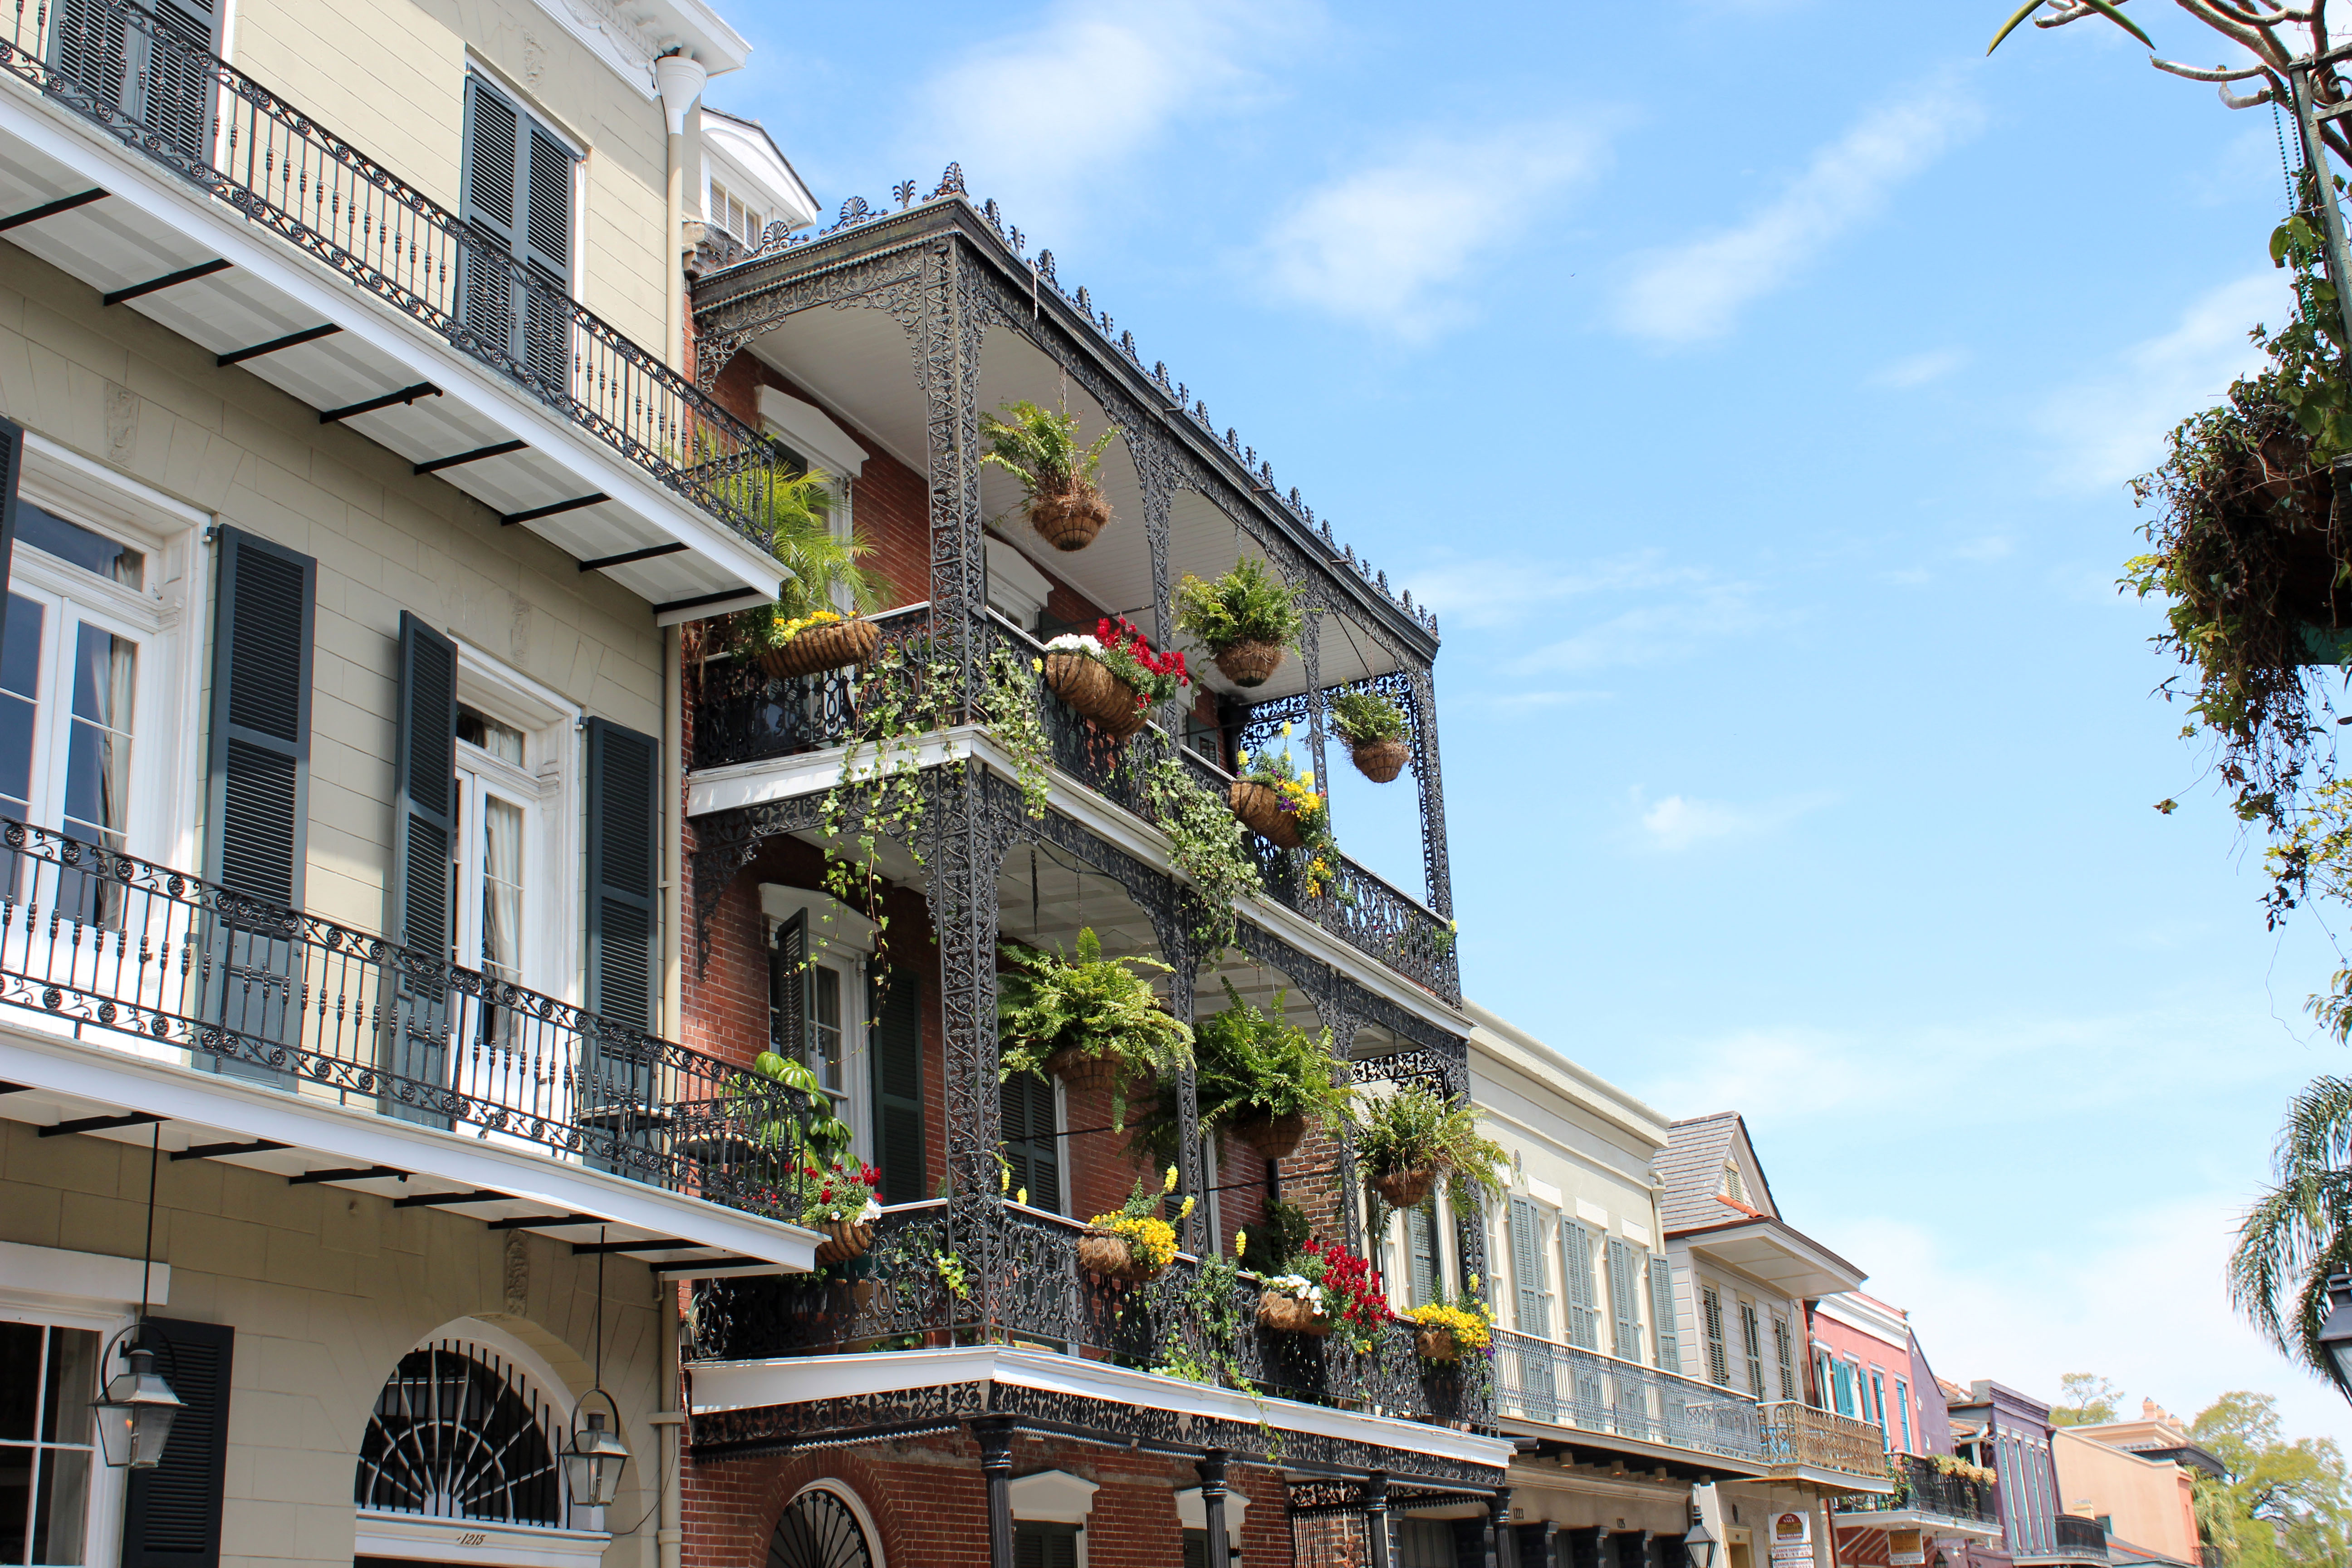 Photo Essay: Houses of New Orleans - Reisetipps